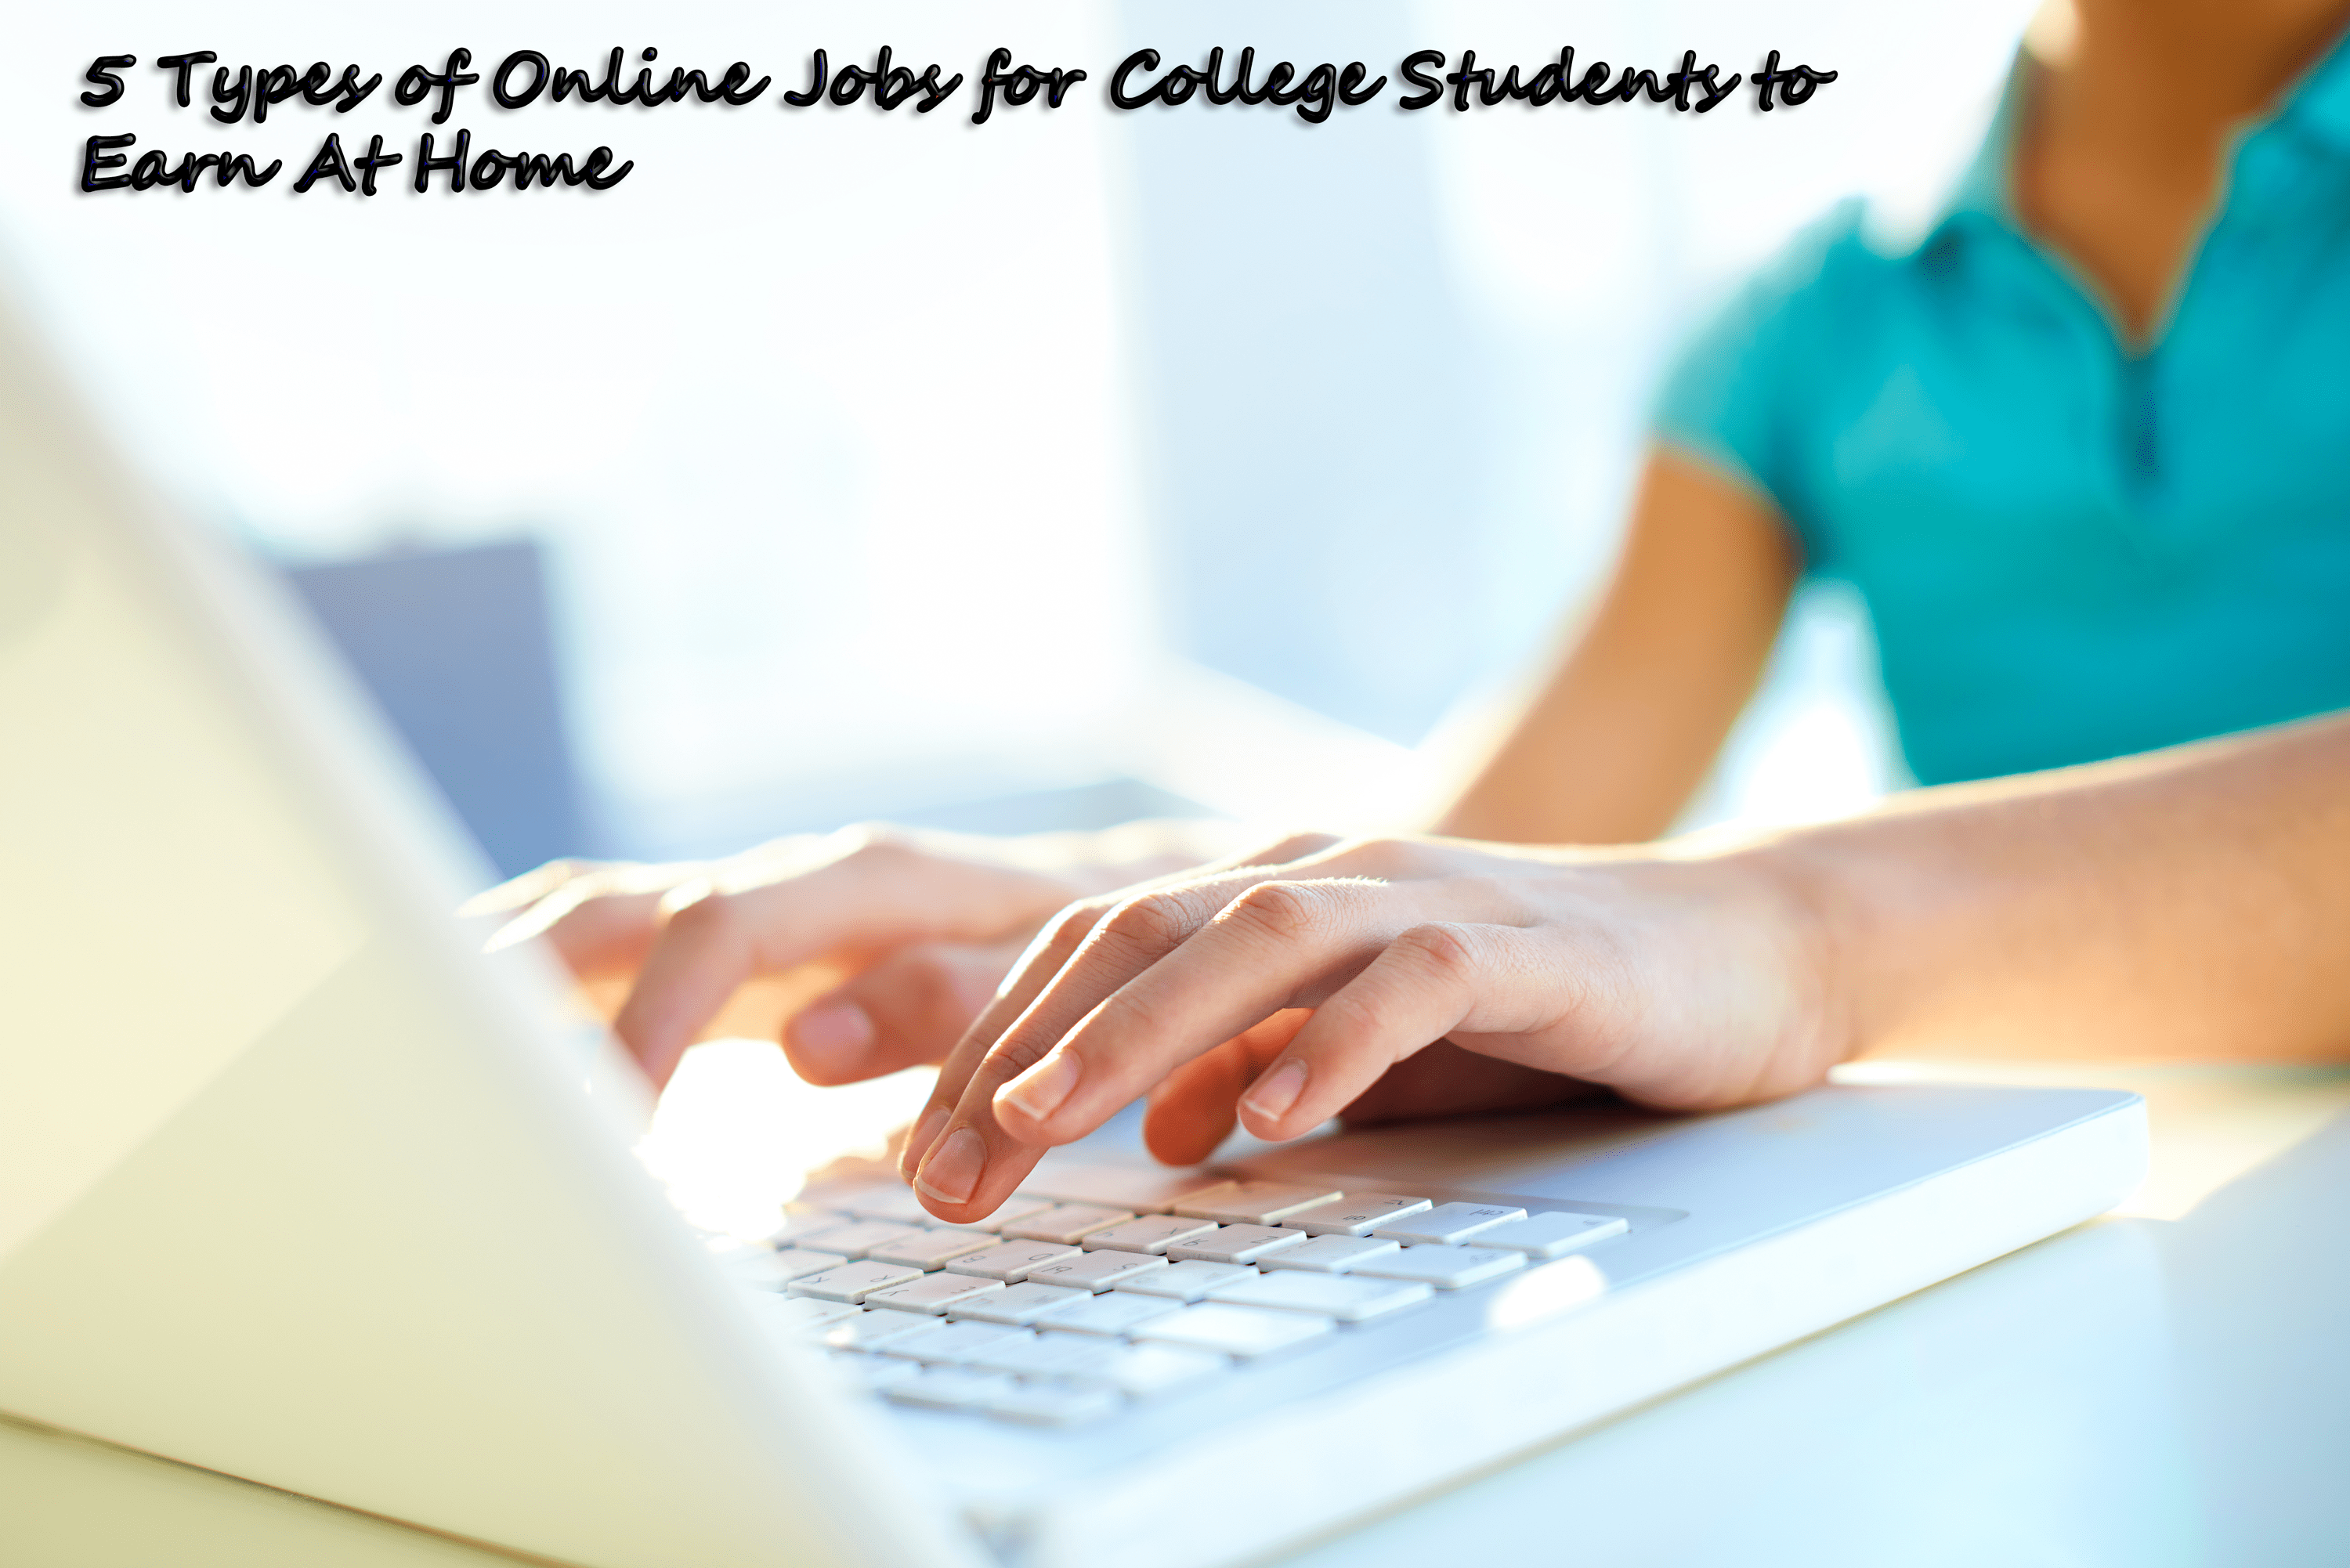 5 types of online jobs for college students to earn money 5 legitimate online jobs for college students to earn at home